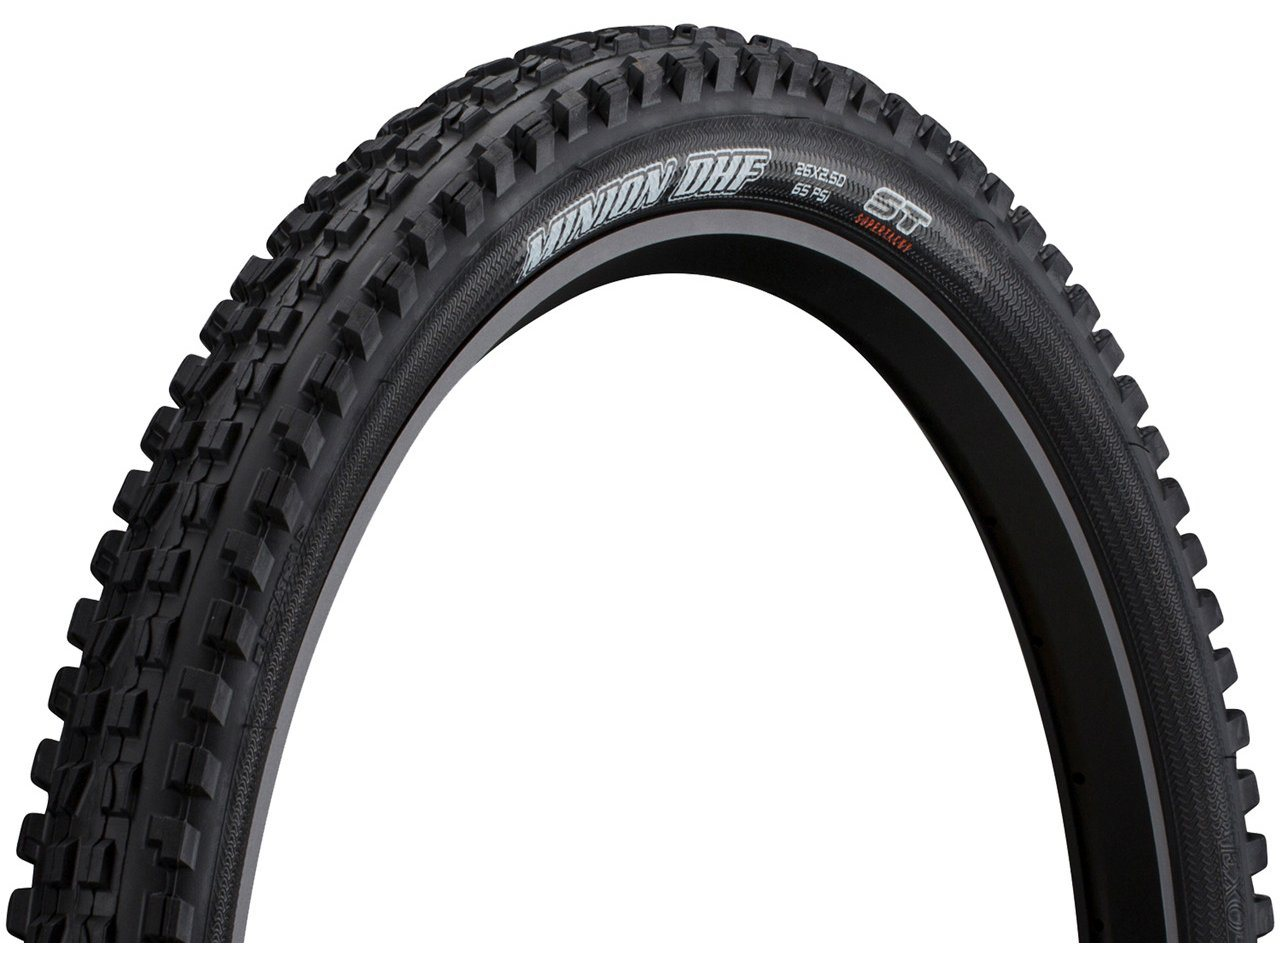 "Maxxis Minion DHF Super Tacky 42a compound 26/"" x 2.50 Wire Tube 60Tpi"